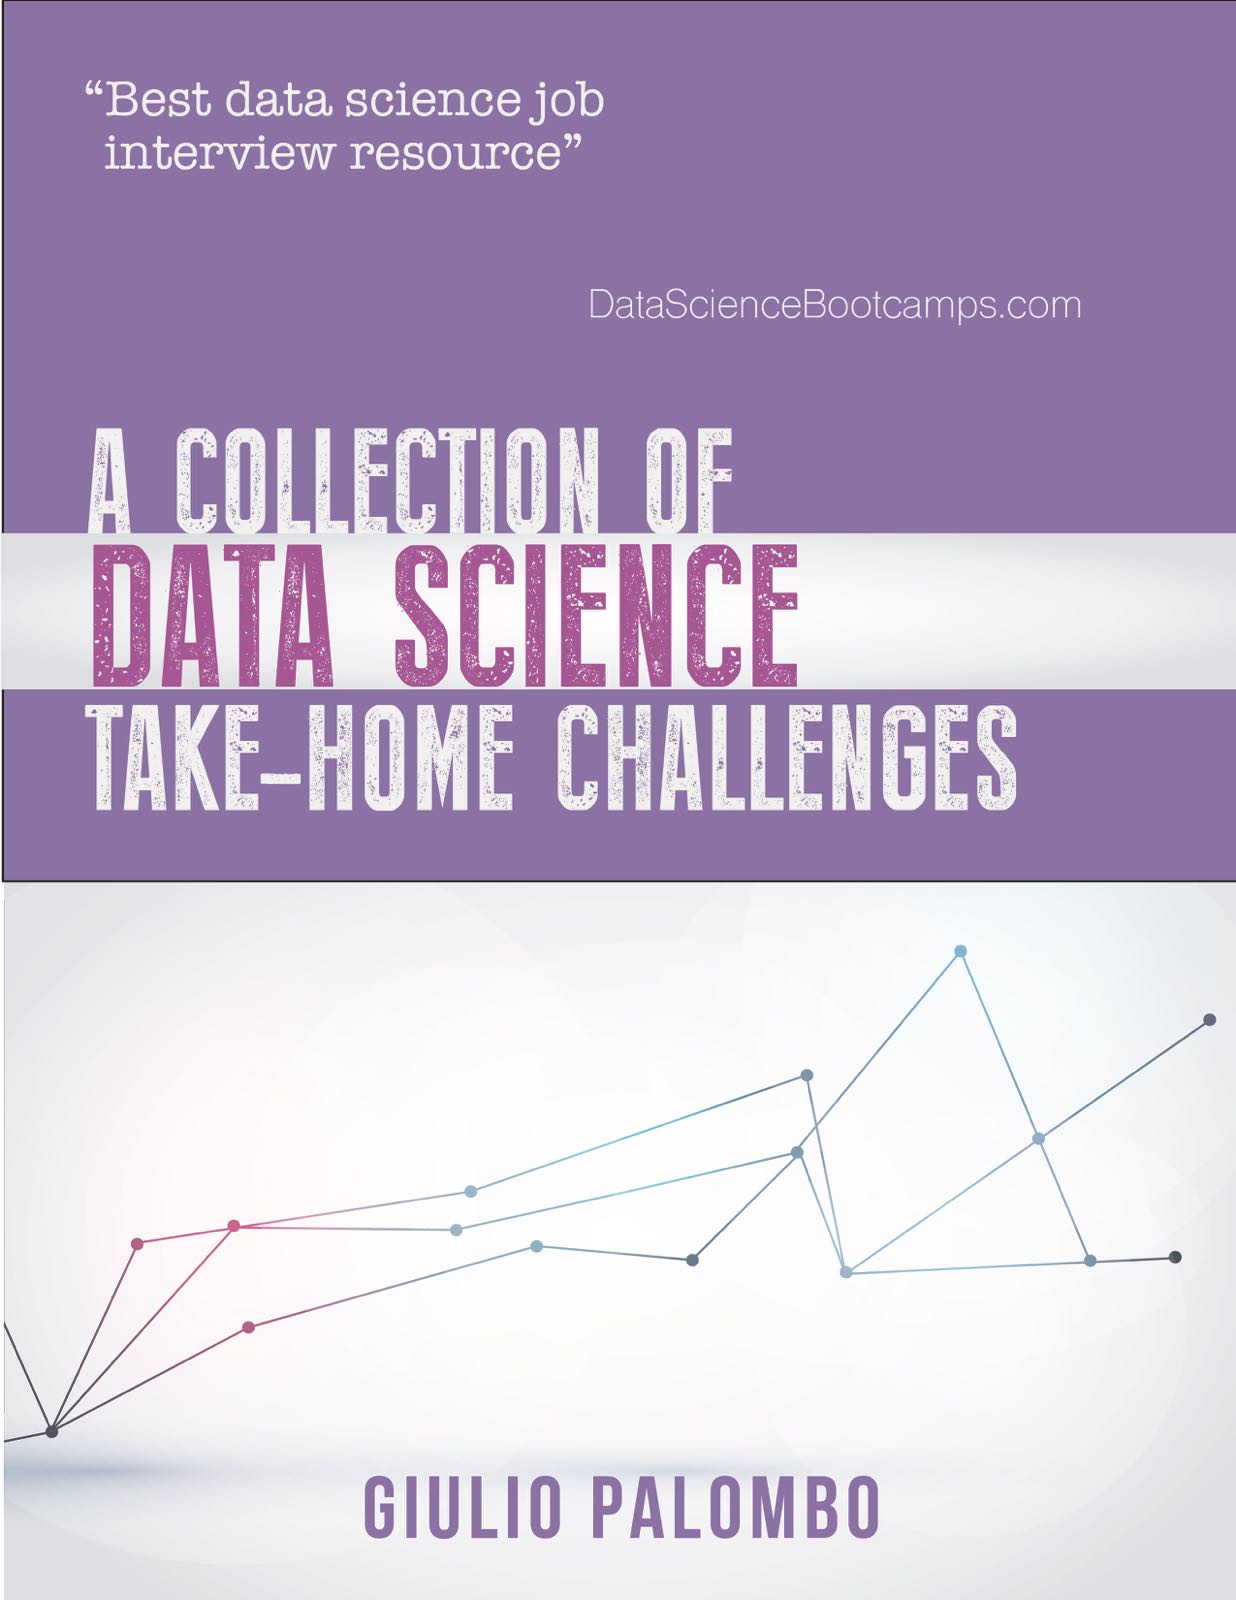 A Collection of Data Science Takehome Challenges - Job Interview